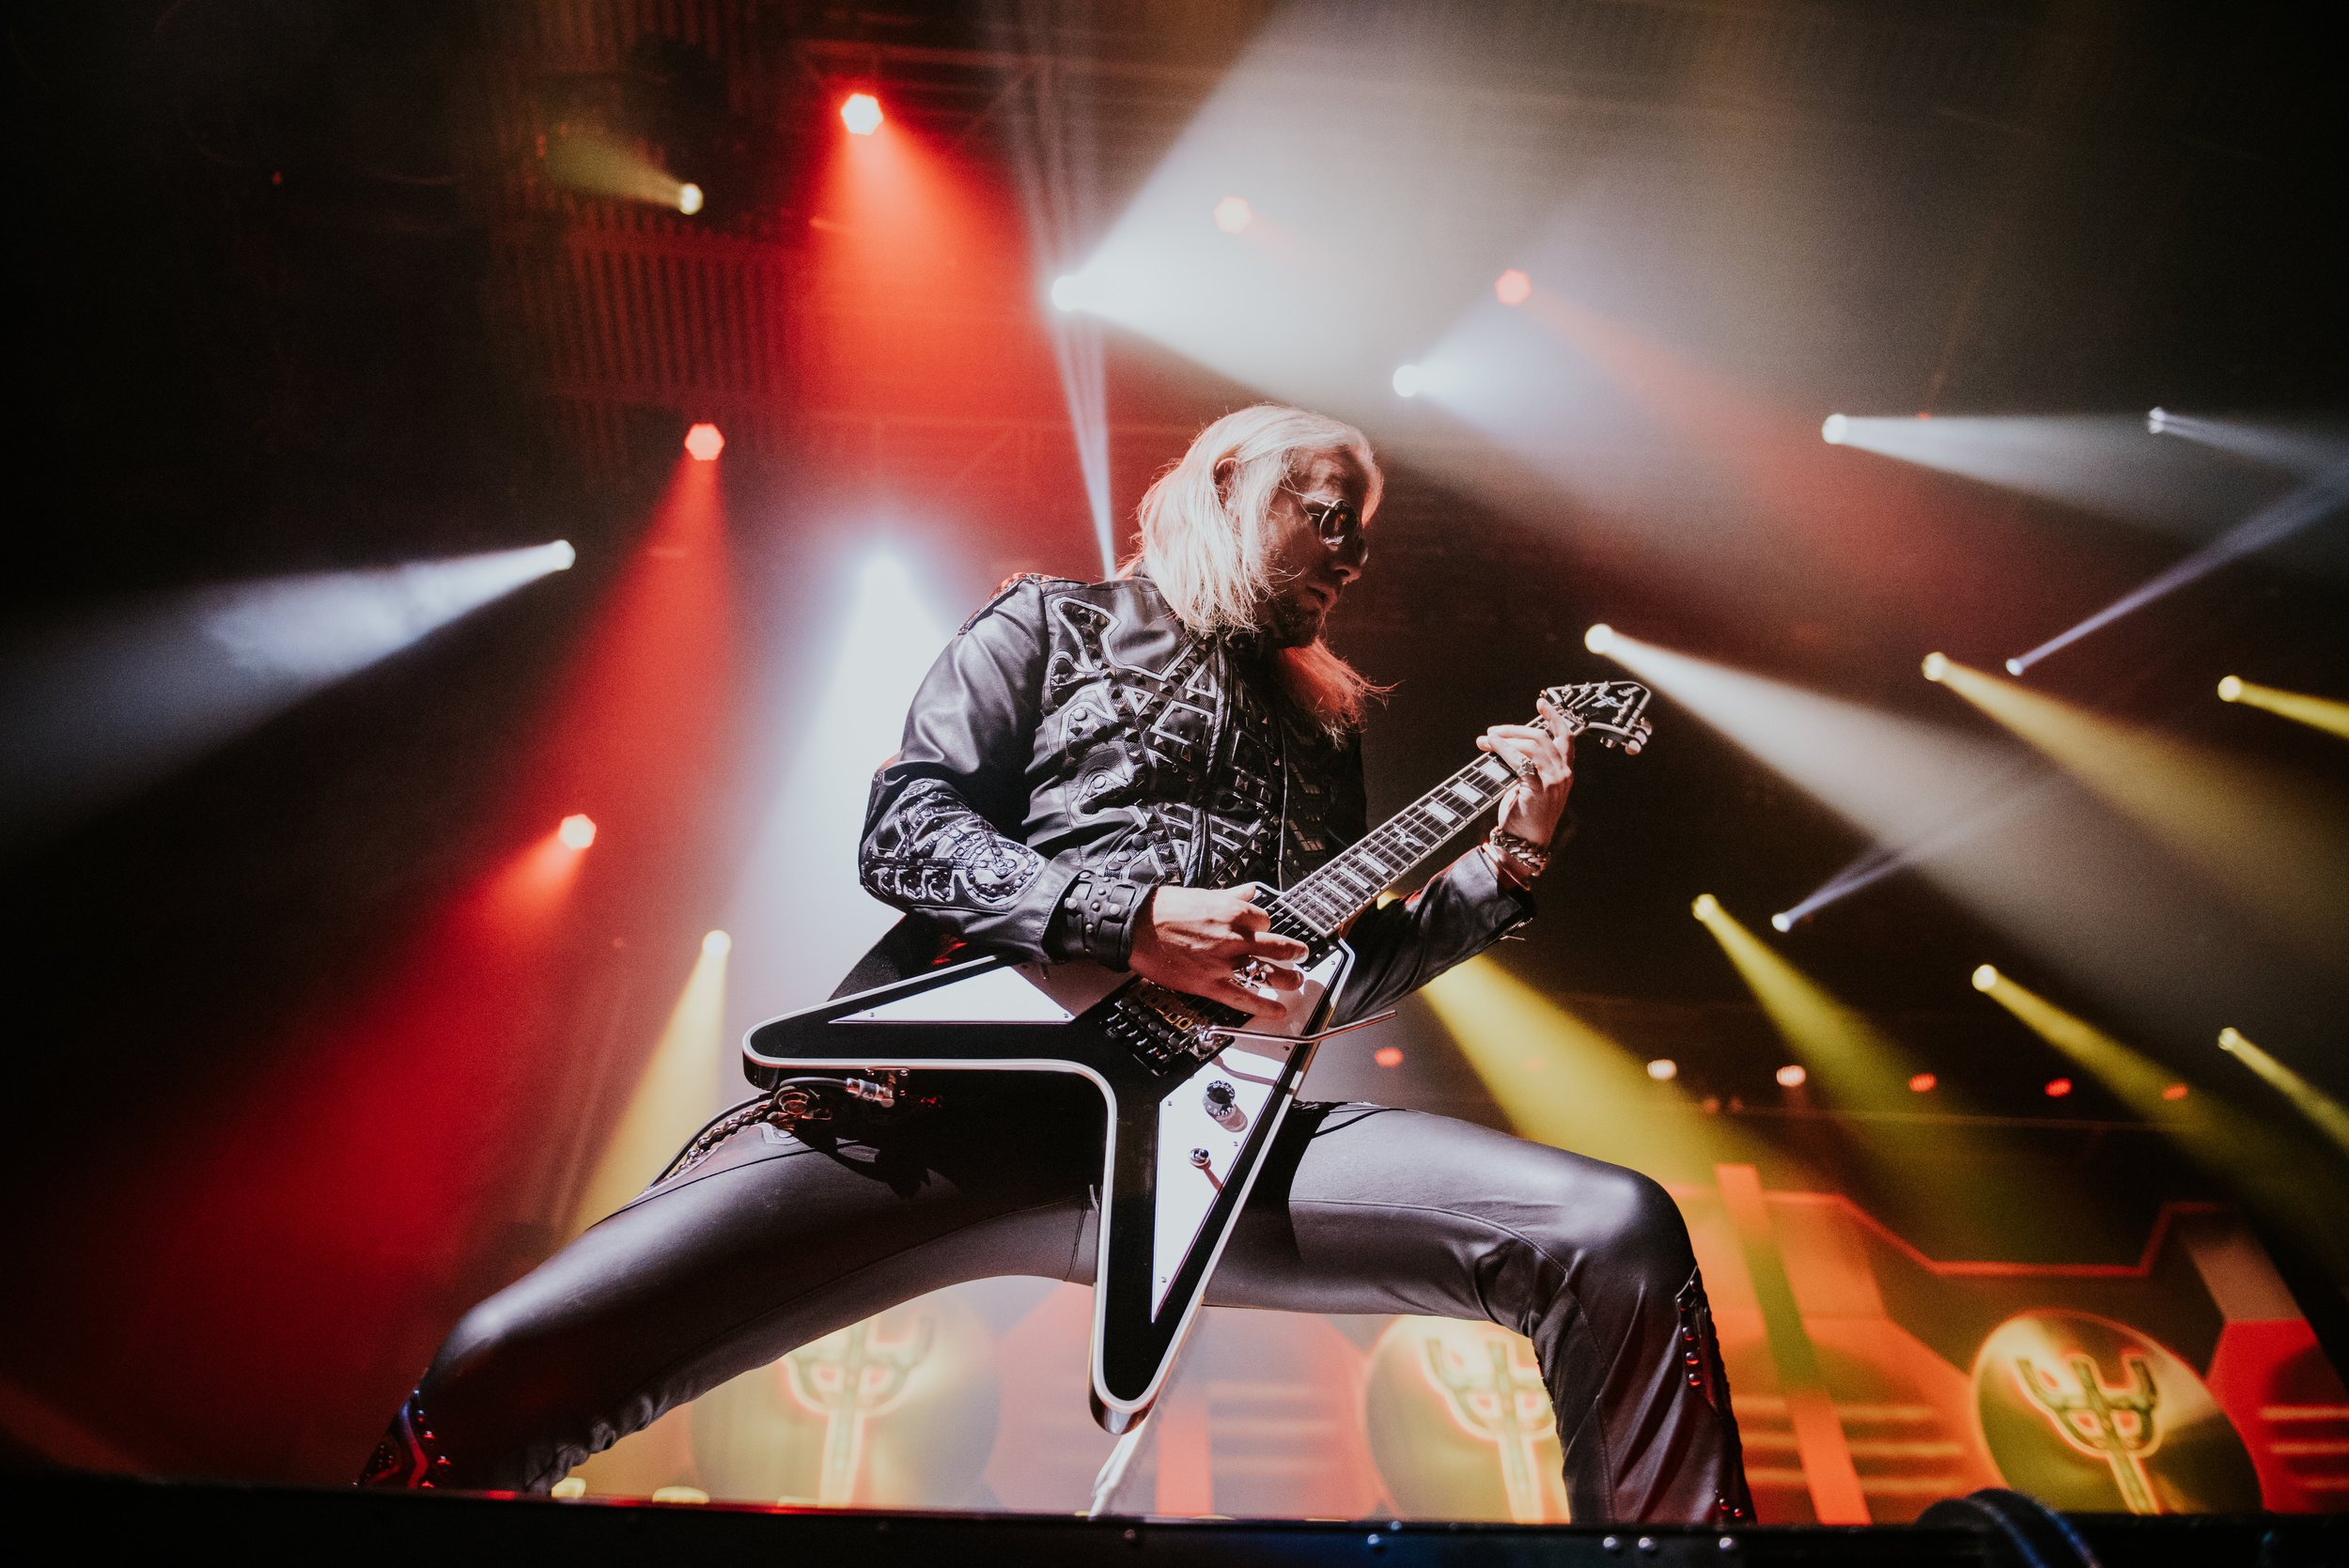 Judas Priest - Print-20.jpg